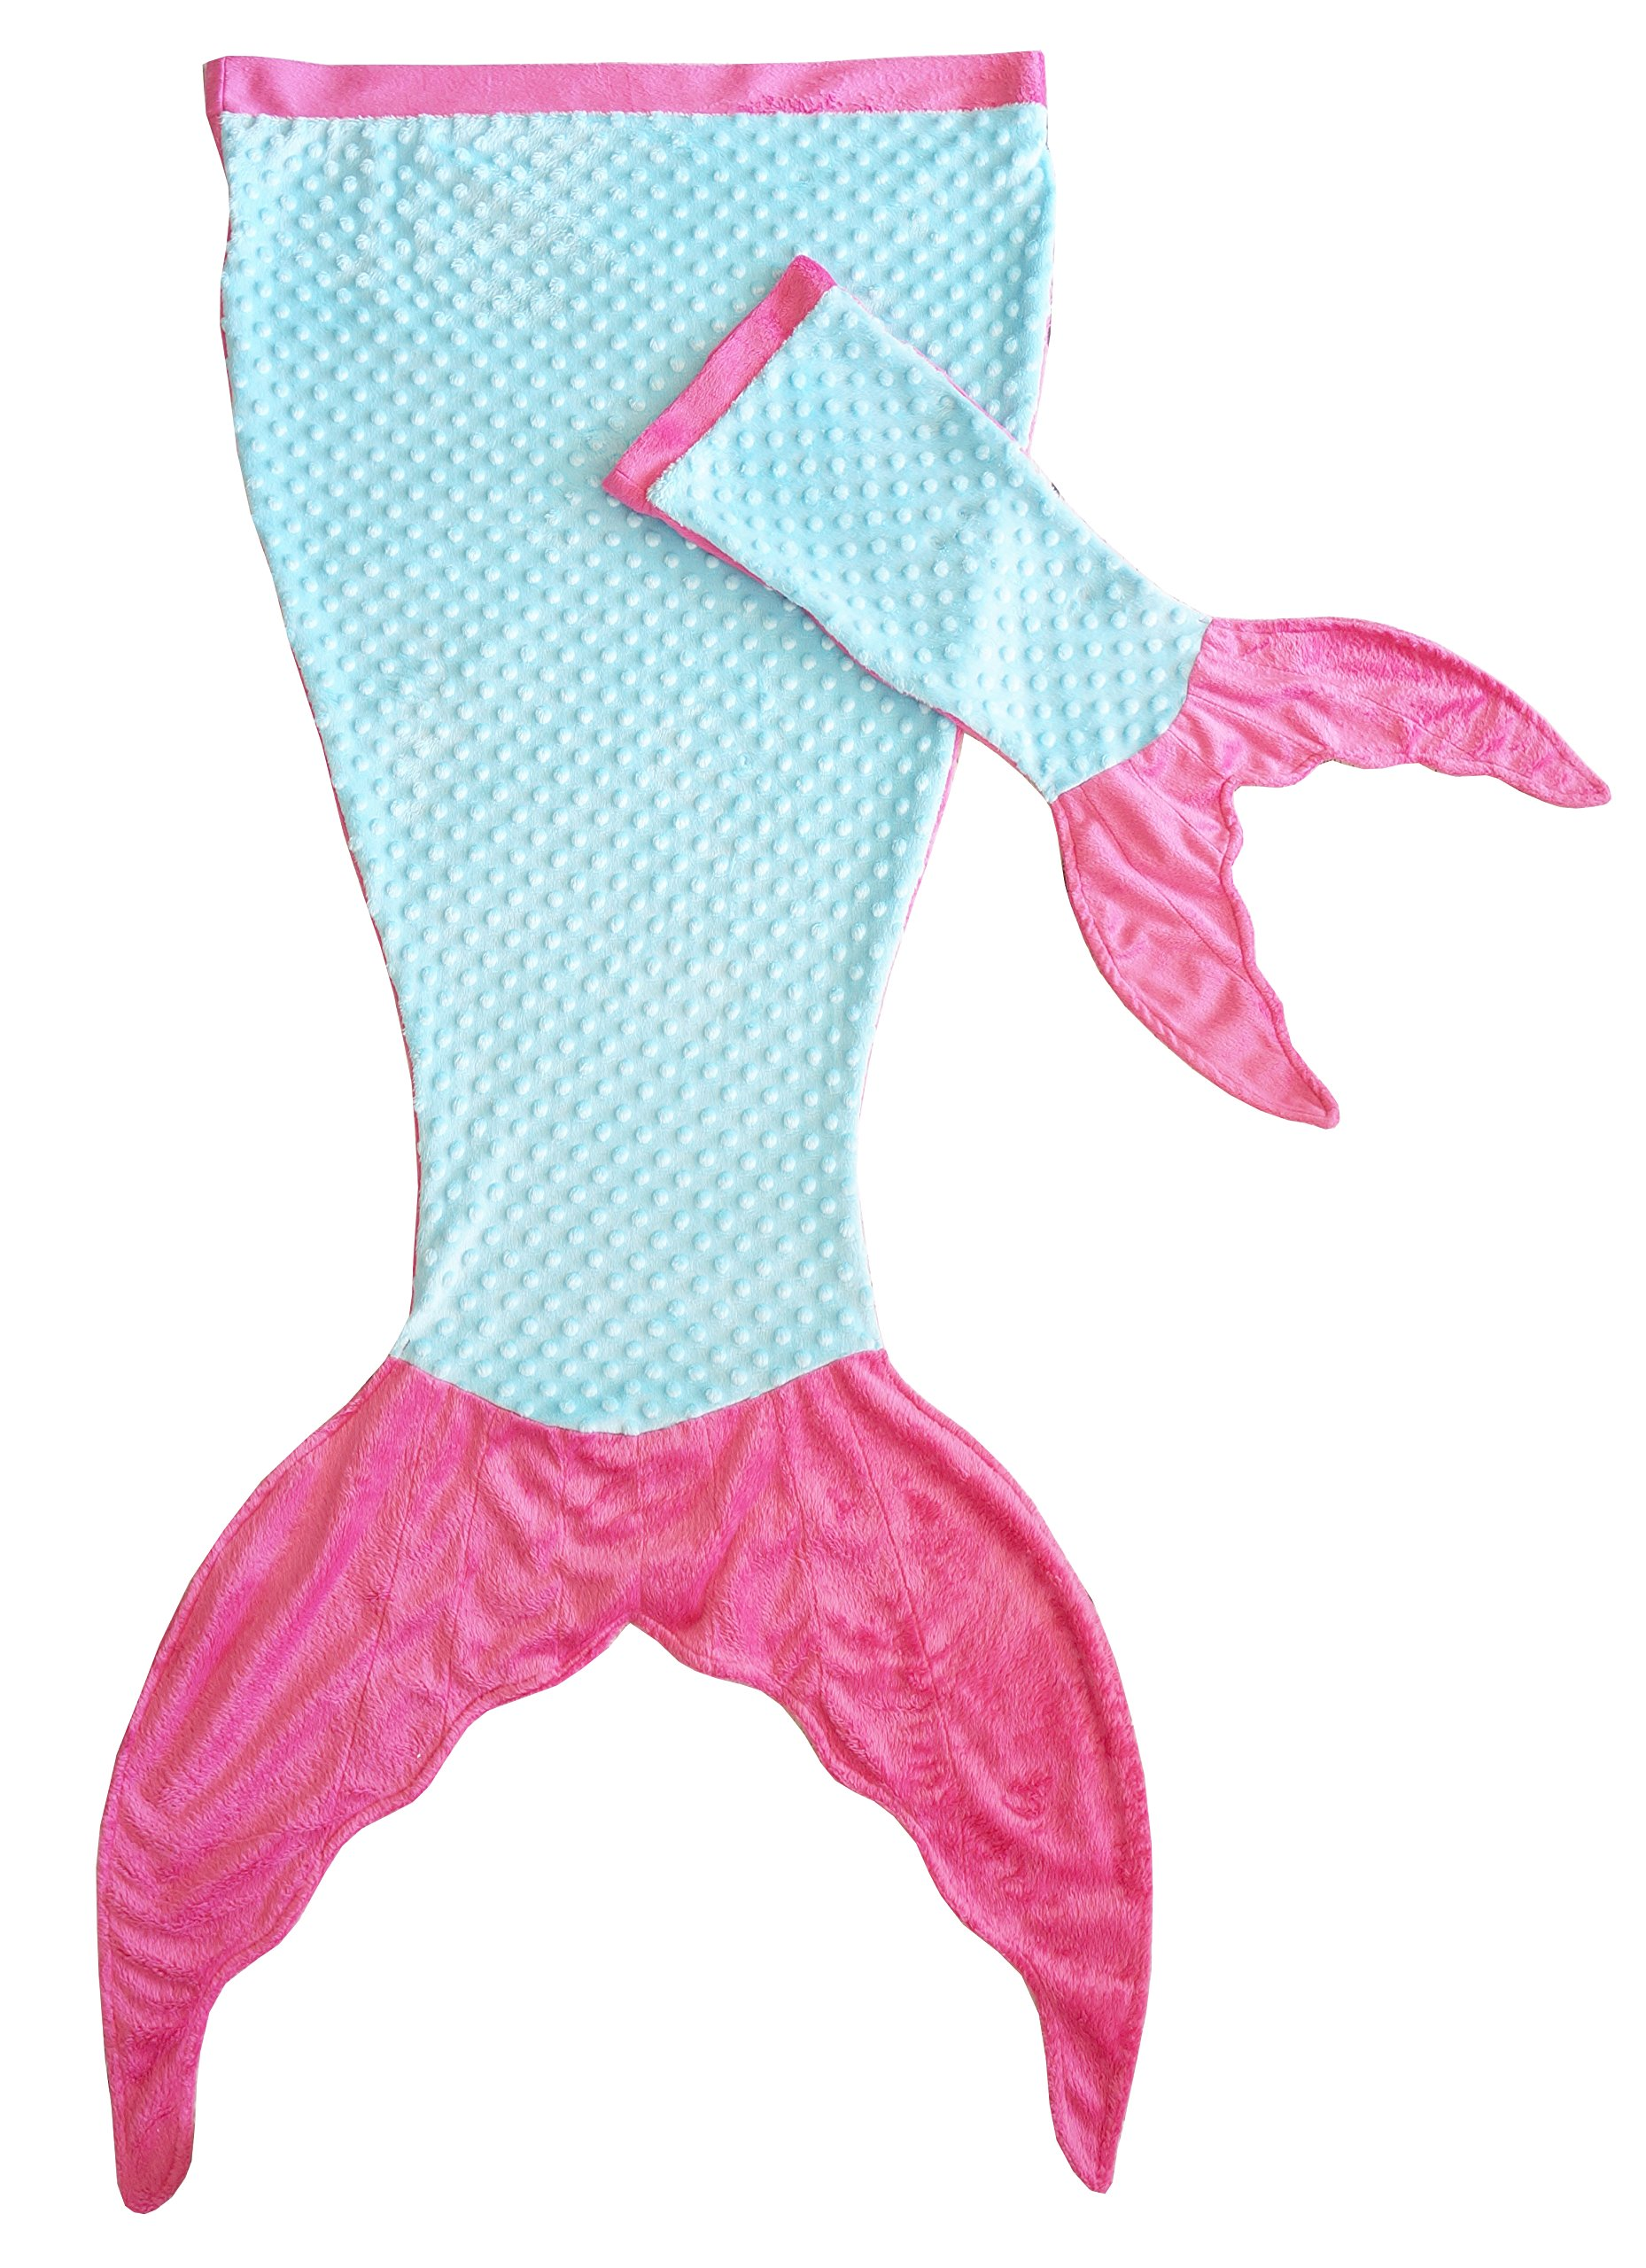 Posh Peanut Mermaid Blanket For Kids - Comfortable Blankie for Children Ages 3-13 with FREE Toy Doll Tail Blanket (Turquoise/Pink)